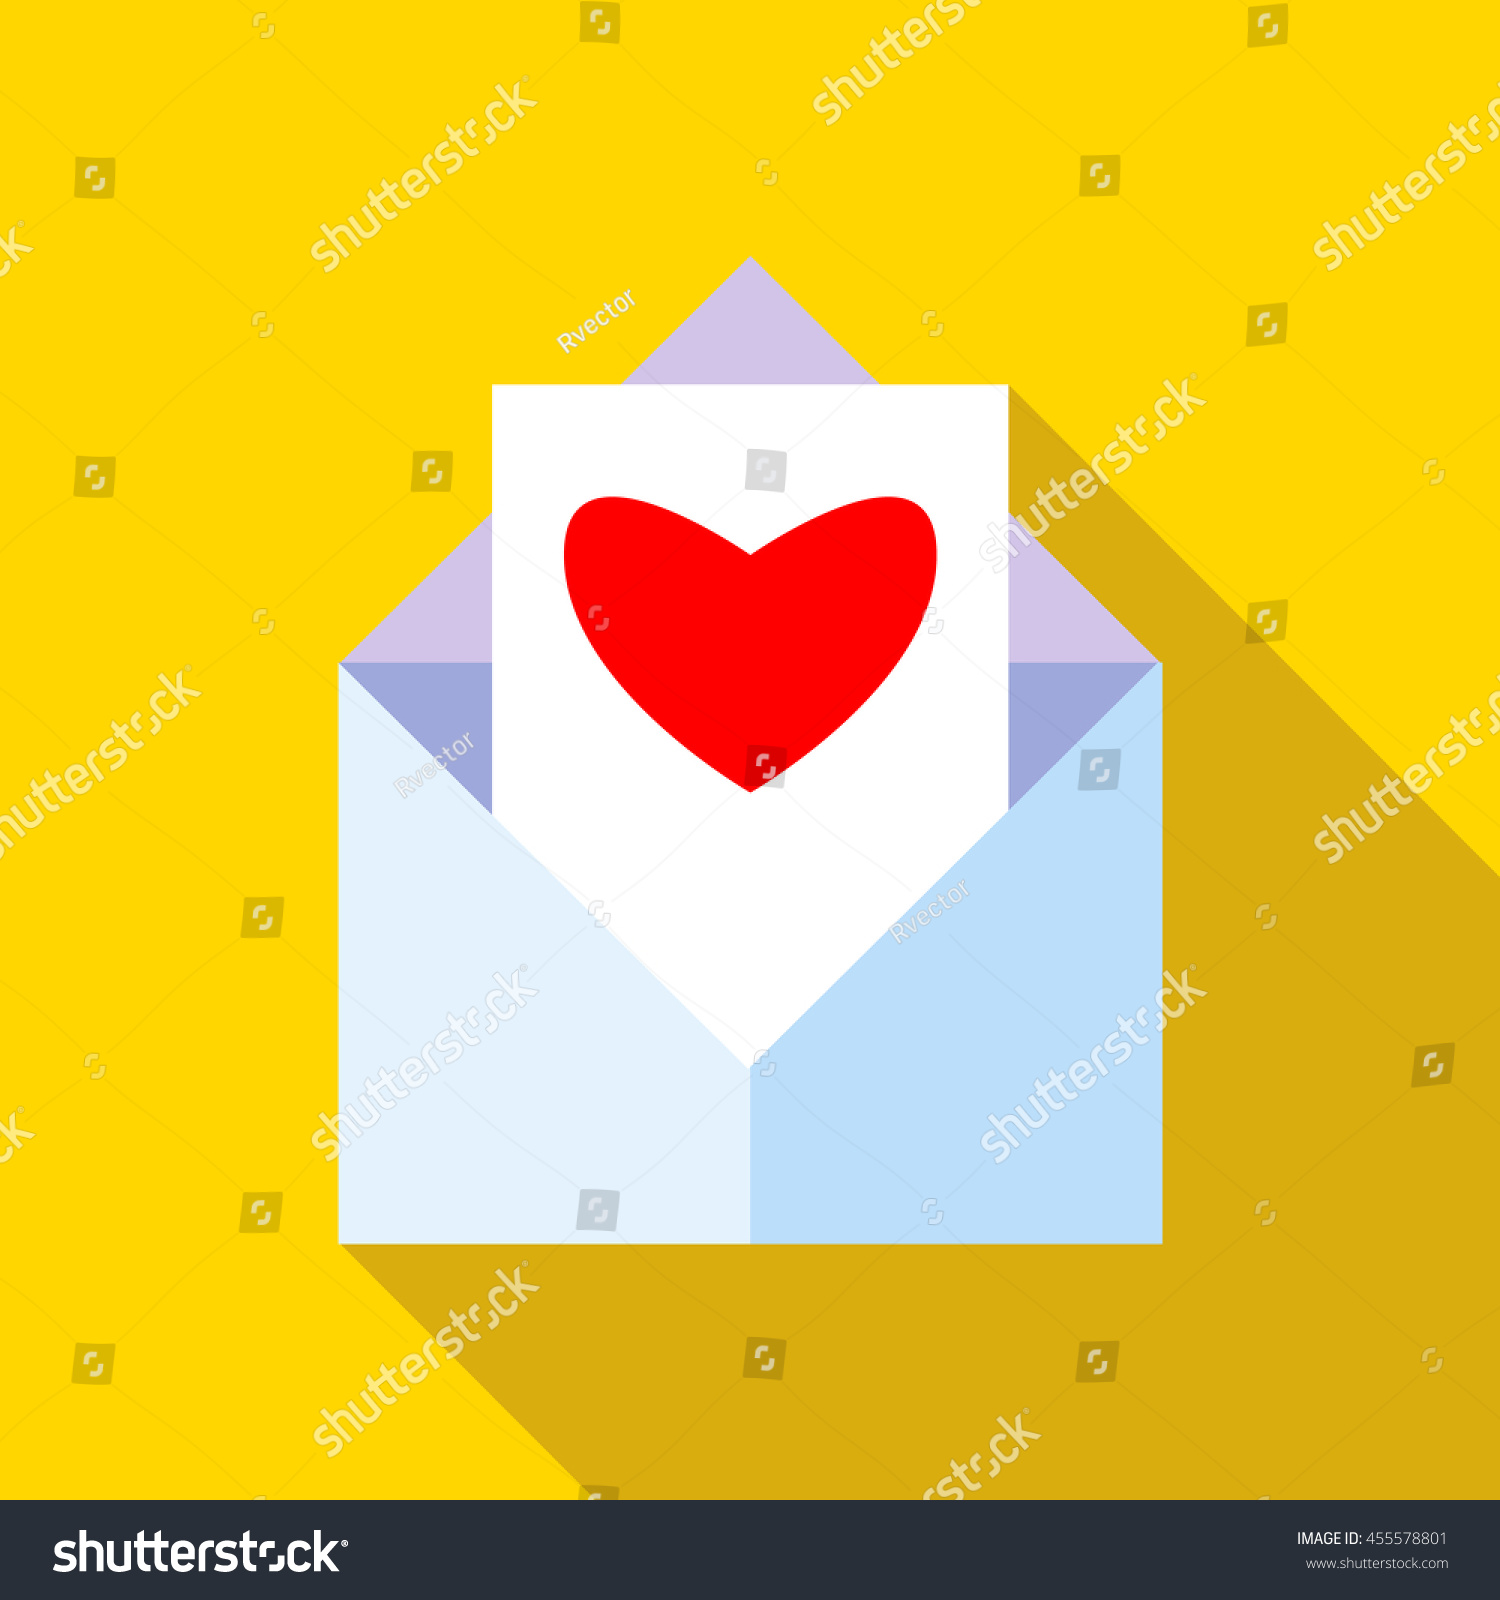 Love letter icon flat style long stock vector 455578801 shutterstock love letter icon in flat style with long shadow message symbol biocorpaavc